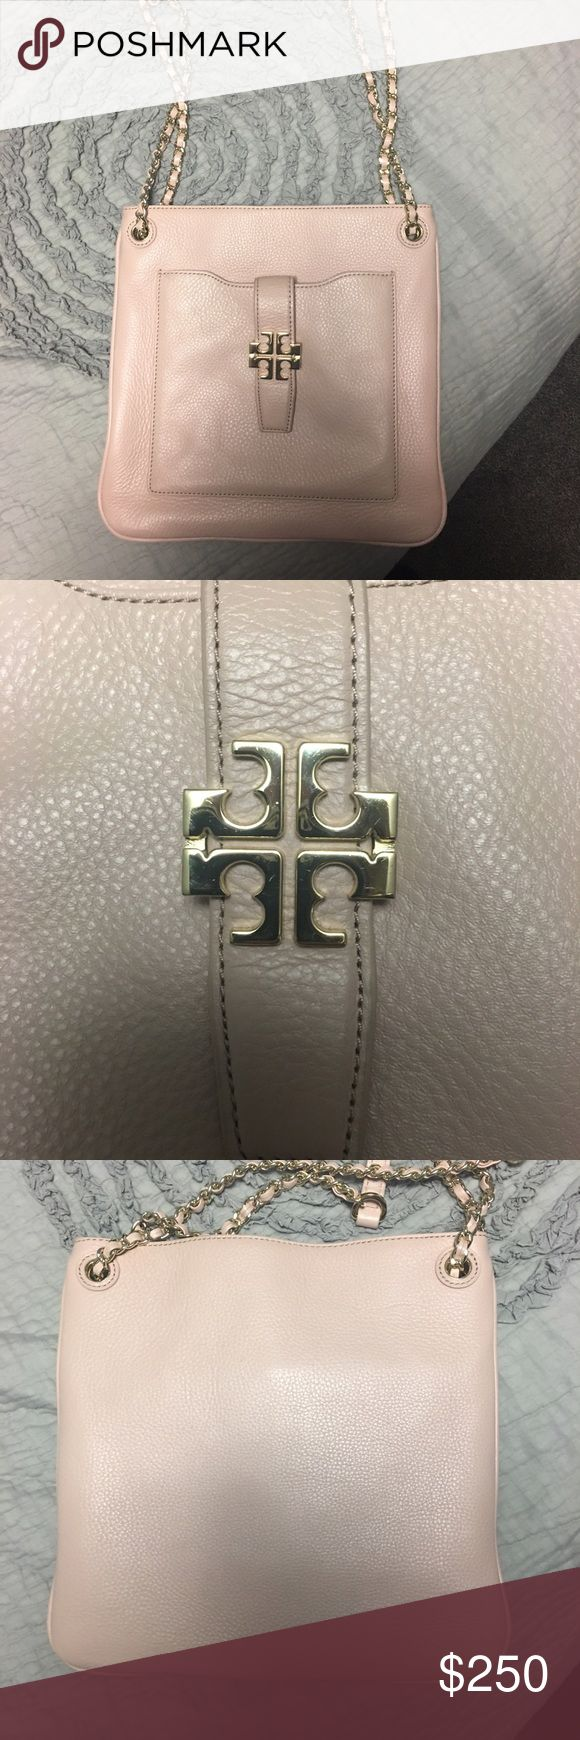 Tory burch shoulder bag Light pink Tory burch shoulder bag! Excellent condition! Only carried twice! Can be used as a cross body. Tory Burch Bags Shoulder Bags